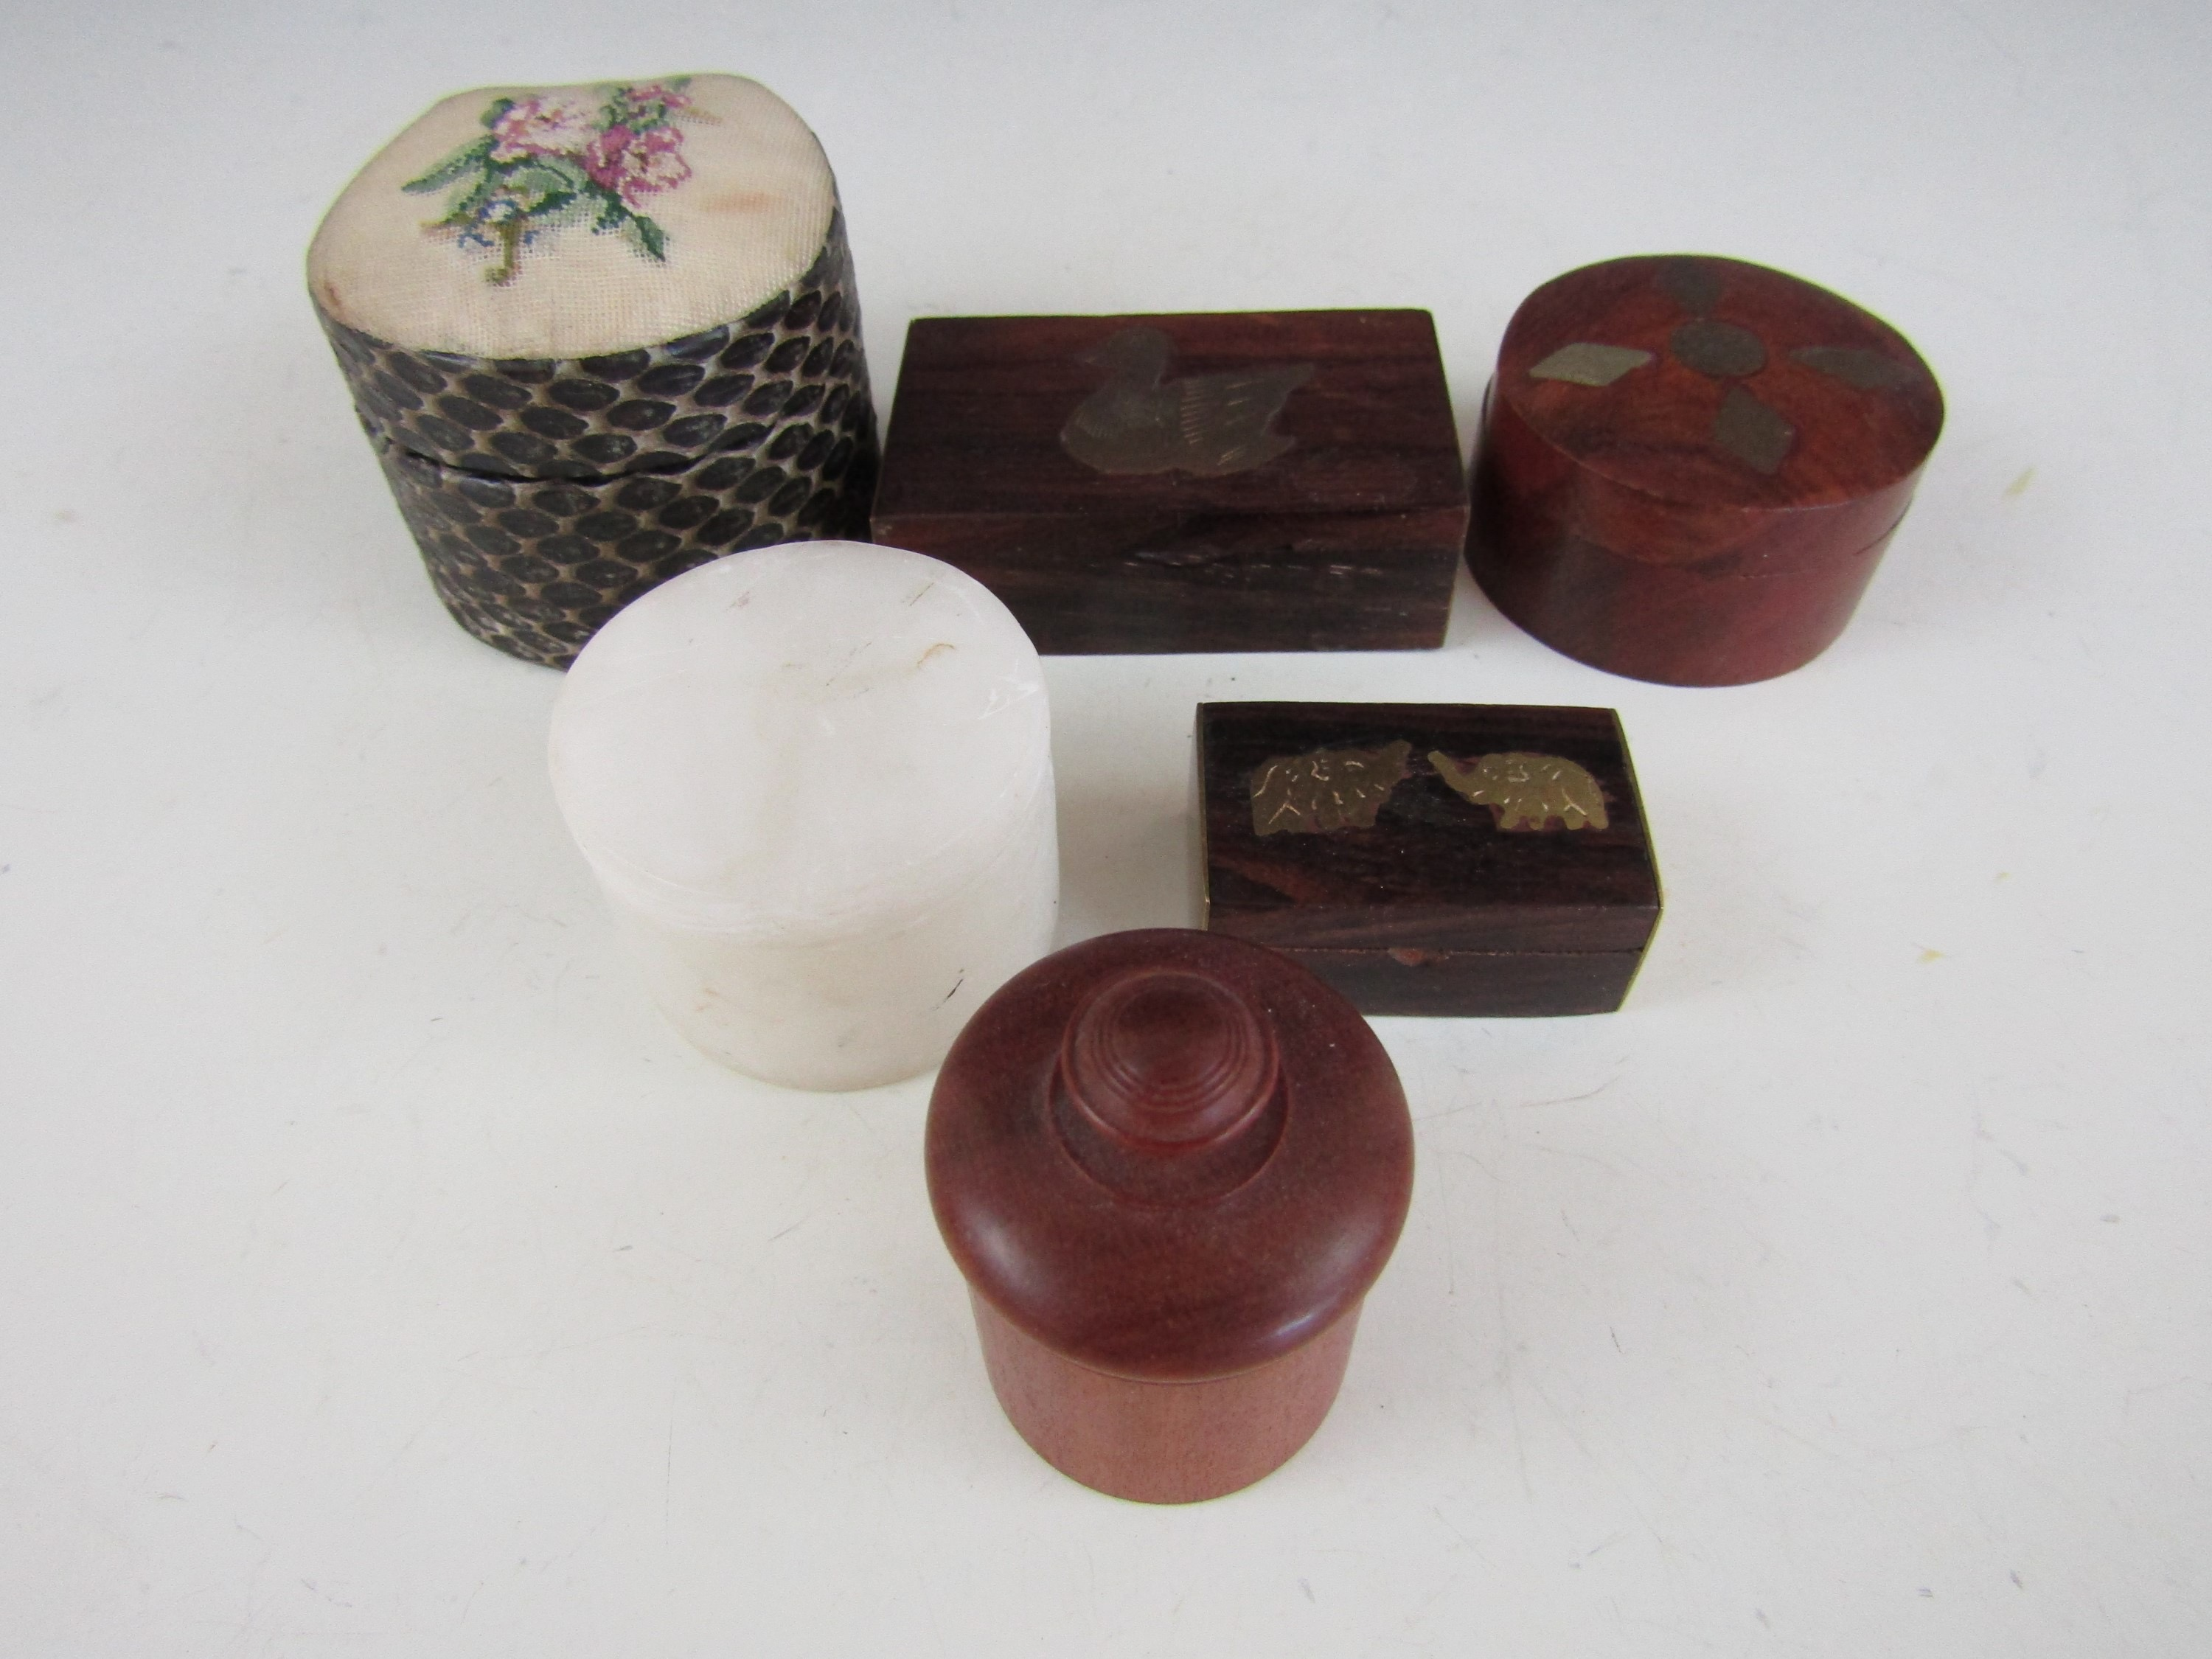 Lot 25 - Vintage treen and other trinket boxes, including a 1940s needlework jewellery box etc (6)